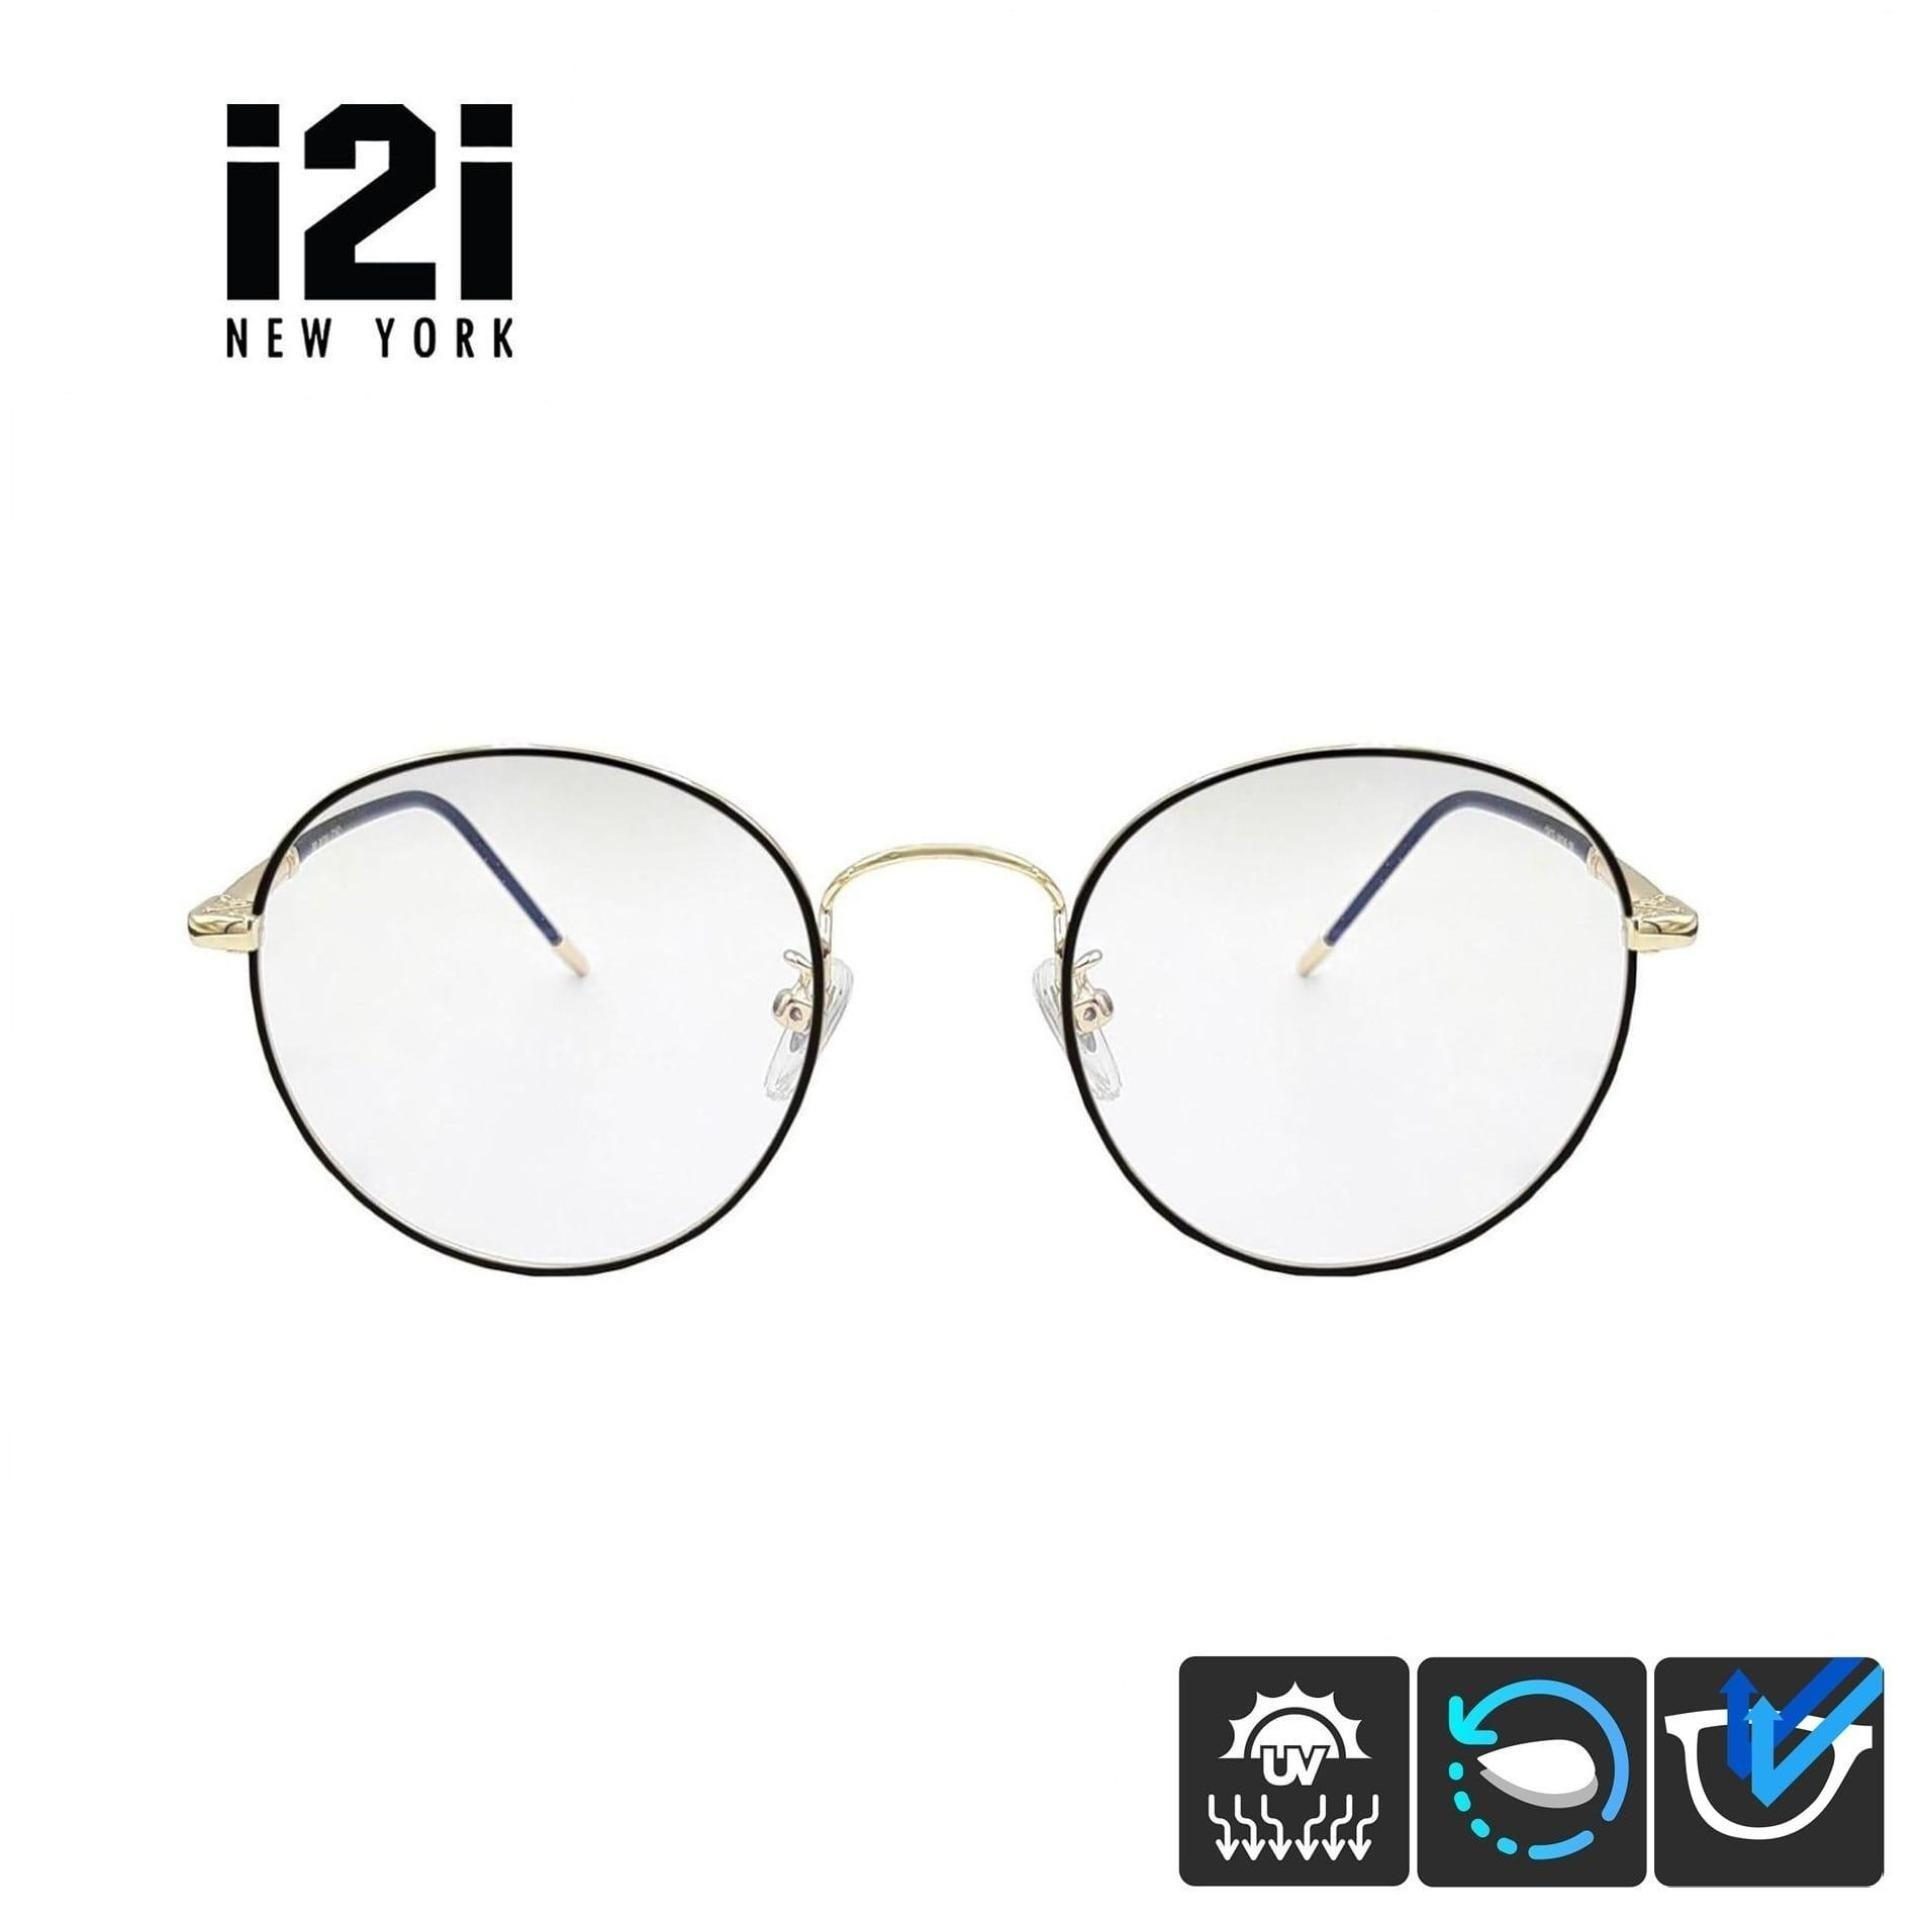 bf3768602 I2I New York Glasses Philippines - I2I New York Eyewear for sale ...